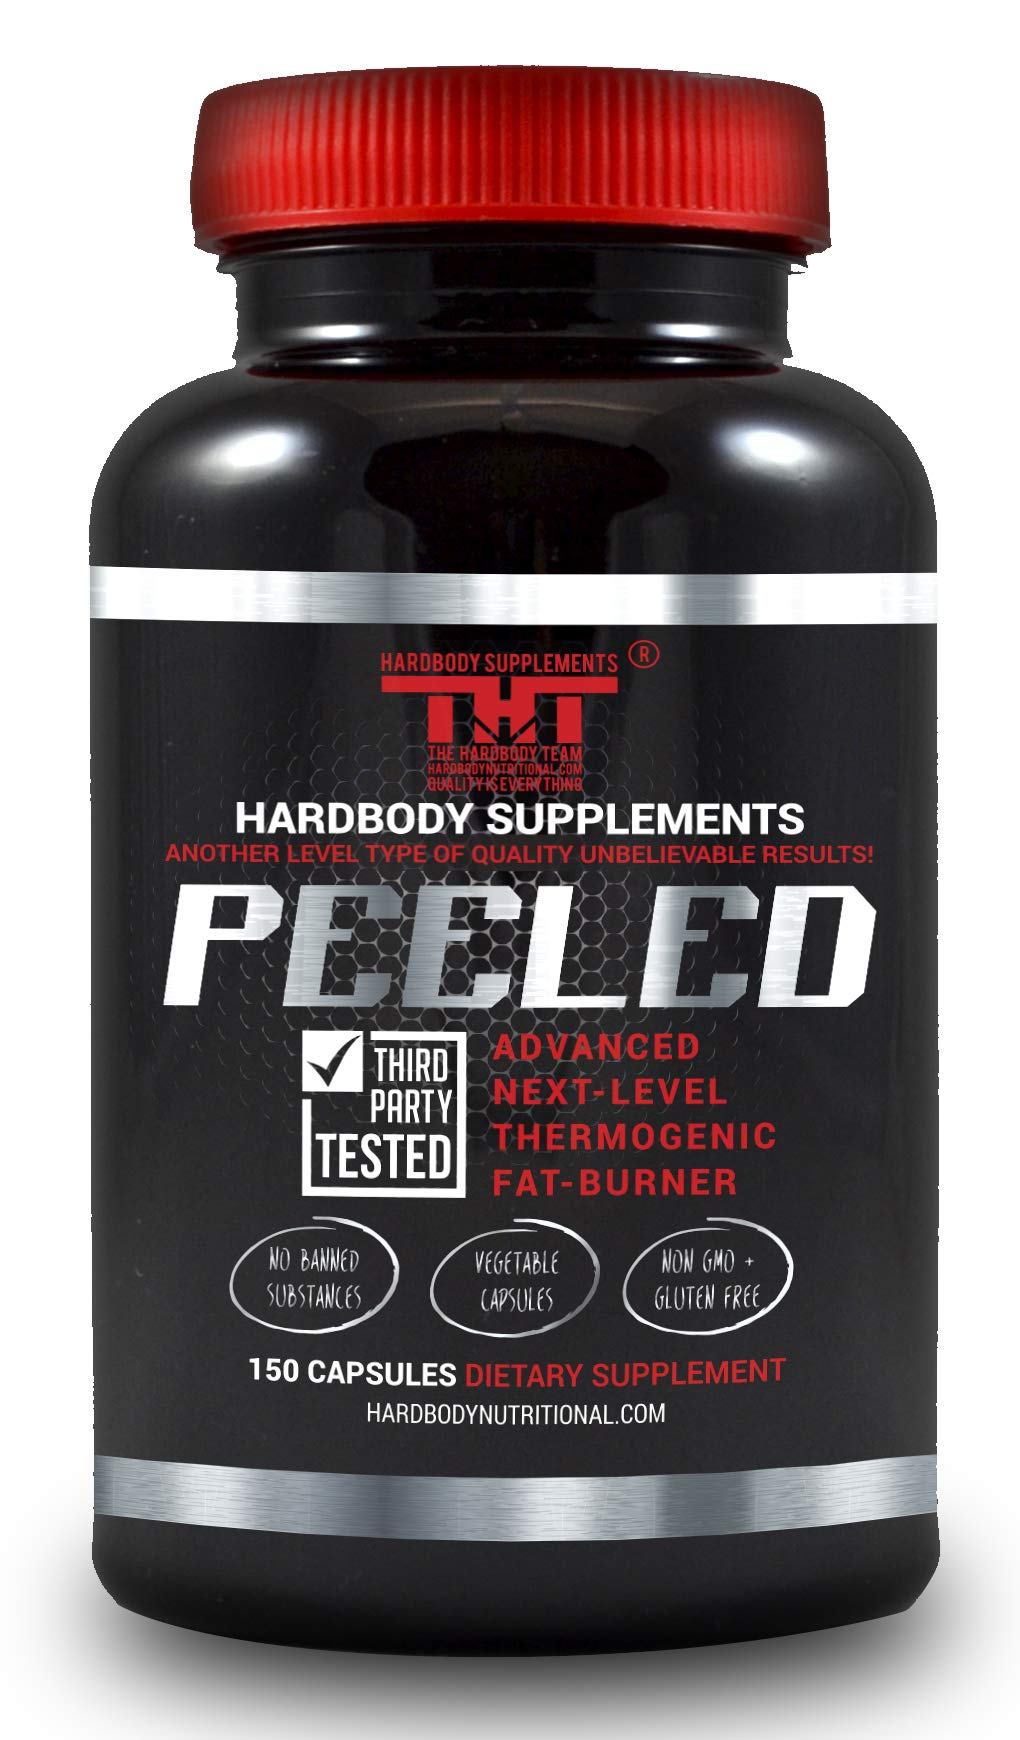 Peeled Thermogenic Fat Burner and Diet Pill for Men and Women. Boost Metabolism, Suppress Appetite, Enhance Energy, Supports Mental Clarity,Improves Mood.Garcinia Cambogia, L-Carnitine,B12 (150) by HARDBODY SUPPLEMENTS THT THE HARDBODY TEAM HARDBODYNUTRITIONAL.COM QUALITY IS EVERYTHING